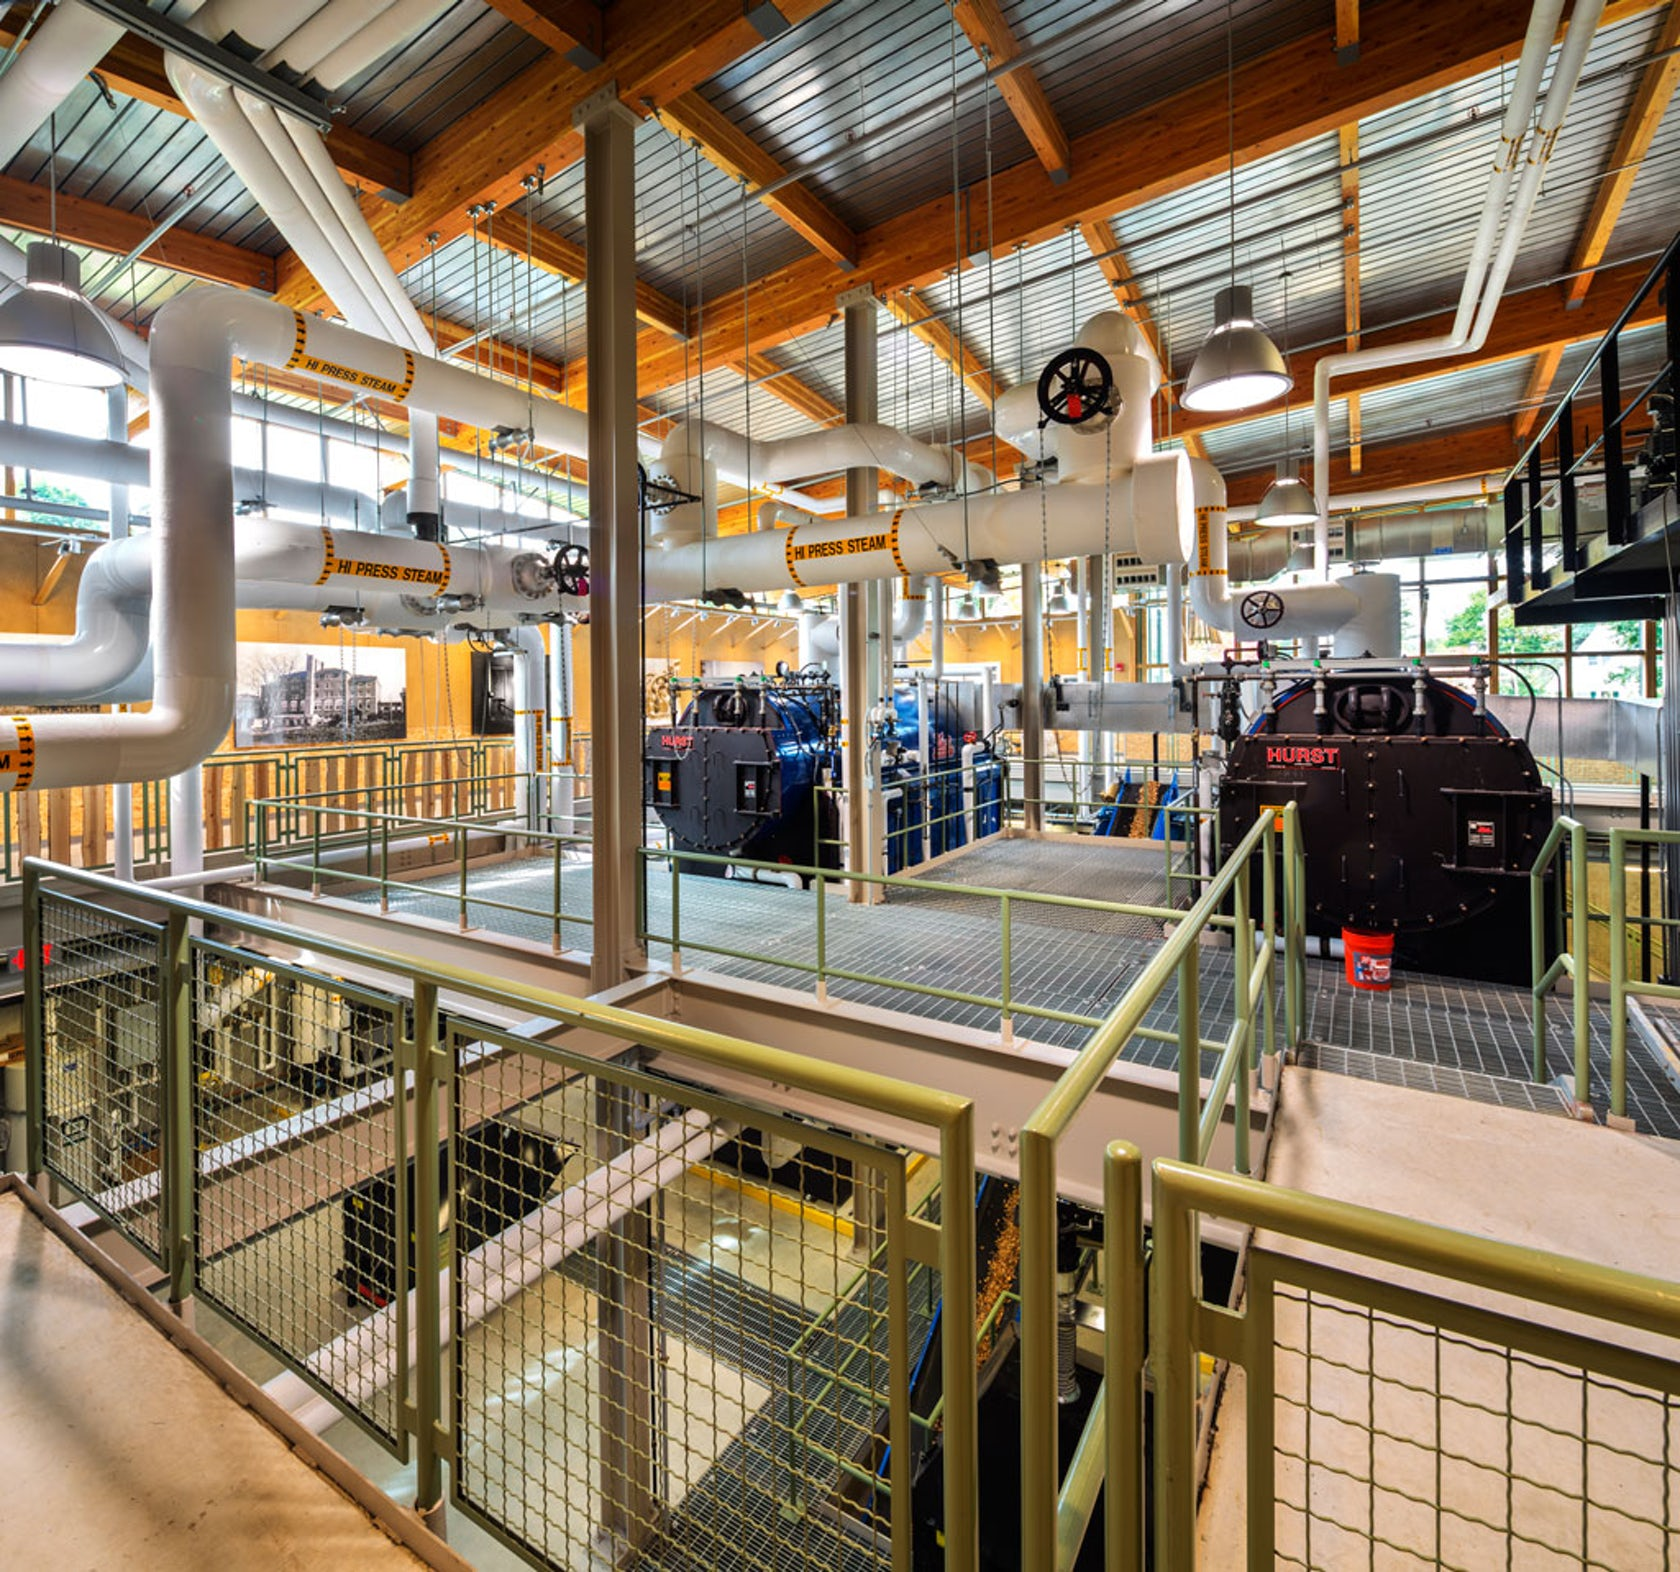 Stem School Eugene Oregon: The Hotchkiss School, Biomass Heating Facility